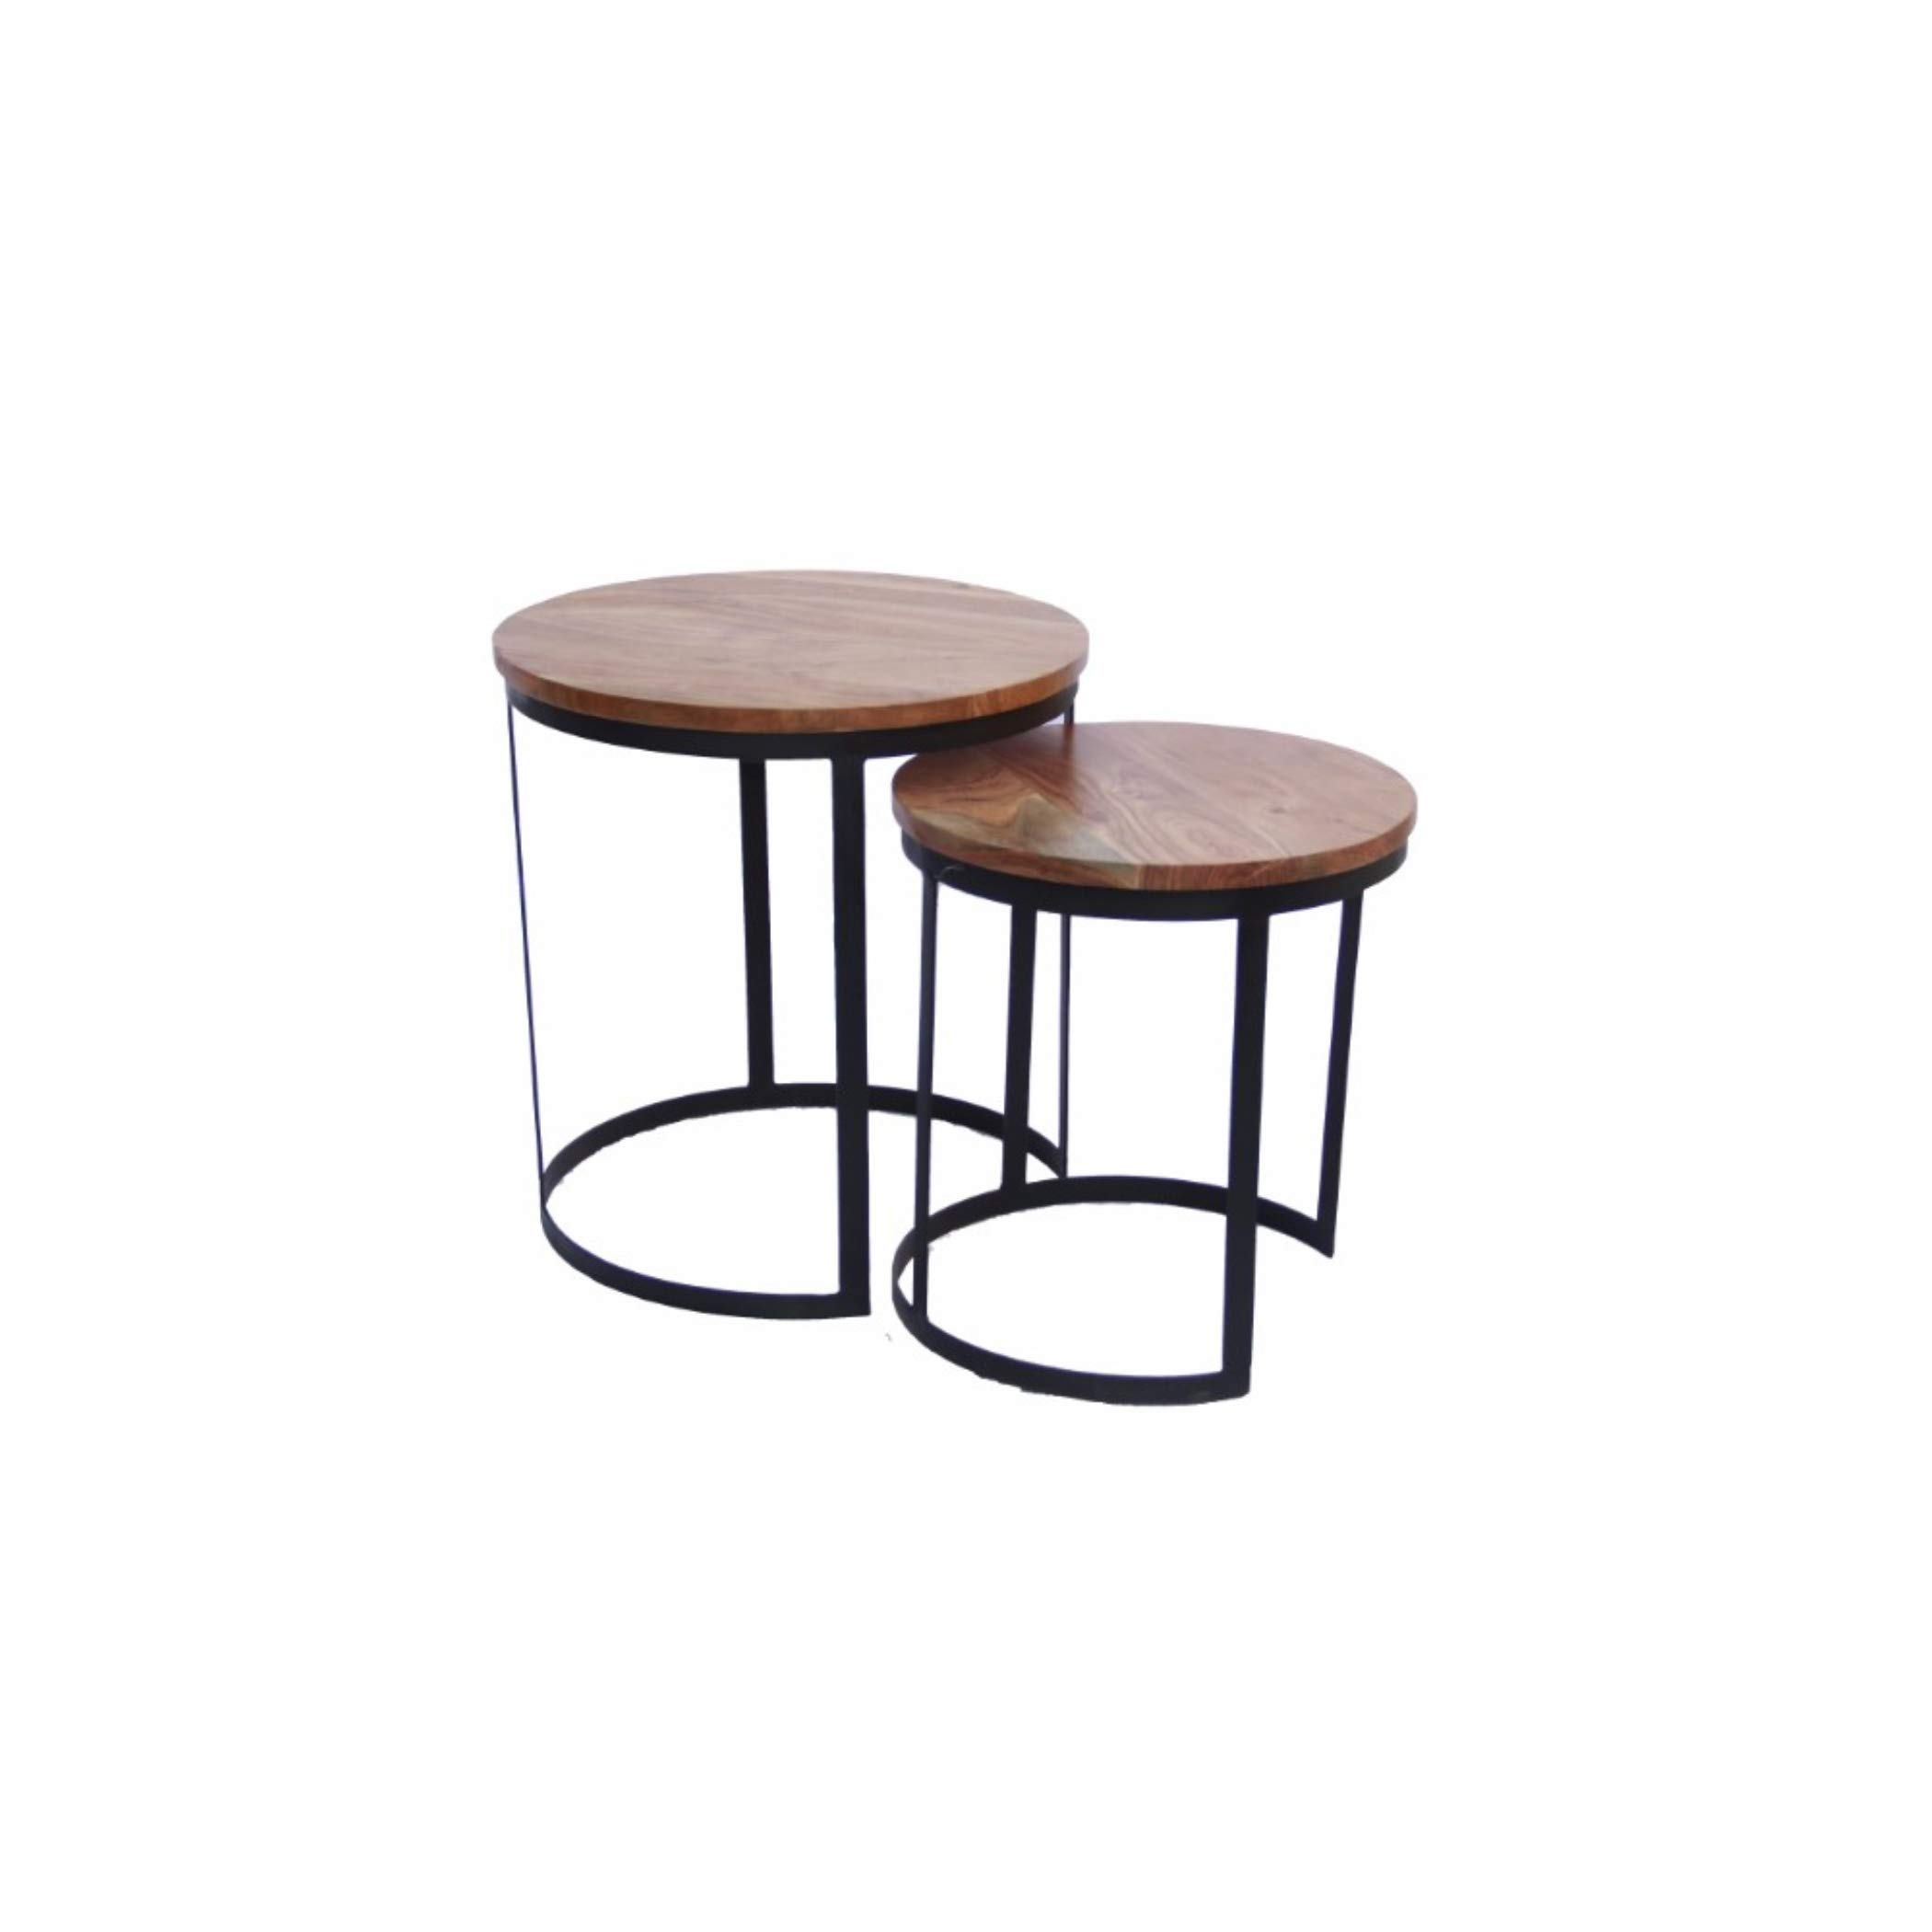 The Urban Port 69100 Industrial Style Round Nesting Tables,Set Of 2, Brown And Black by The Urban Port